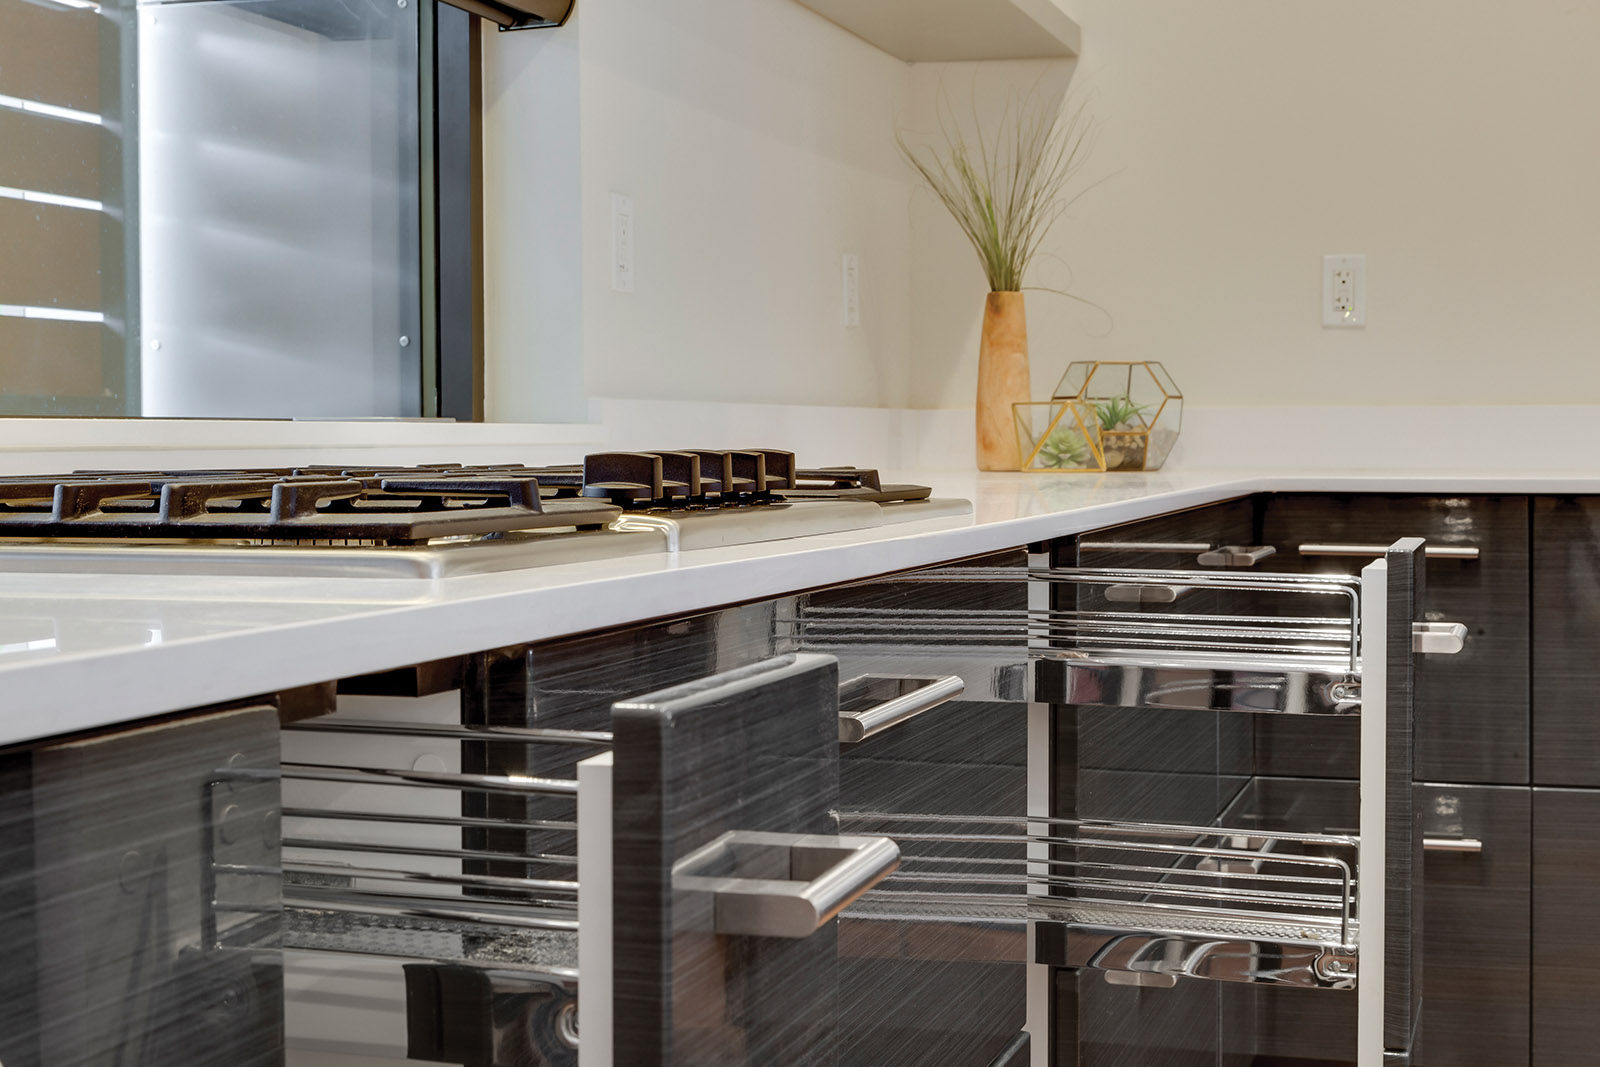 Loft Contemporary Kitchen Cabinets: Gray with Pull-Out Drawer Close-Up